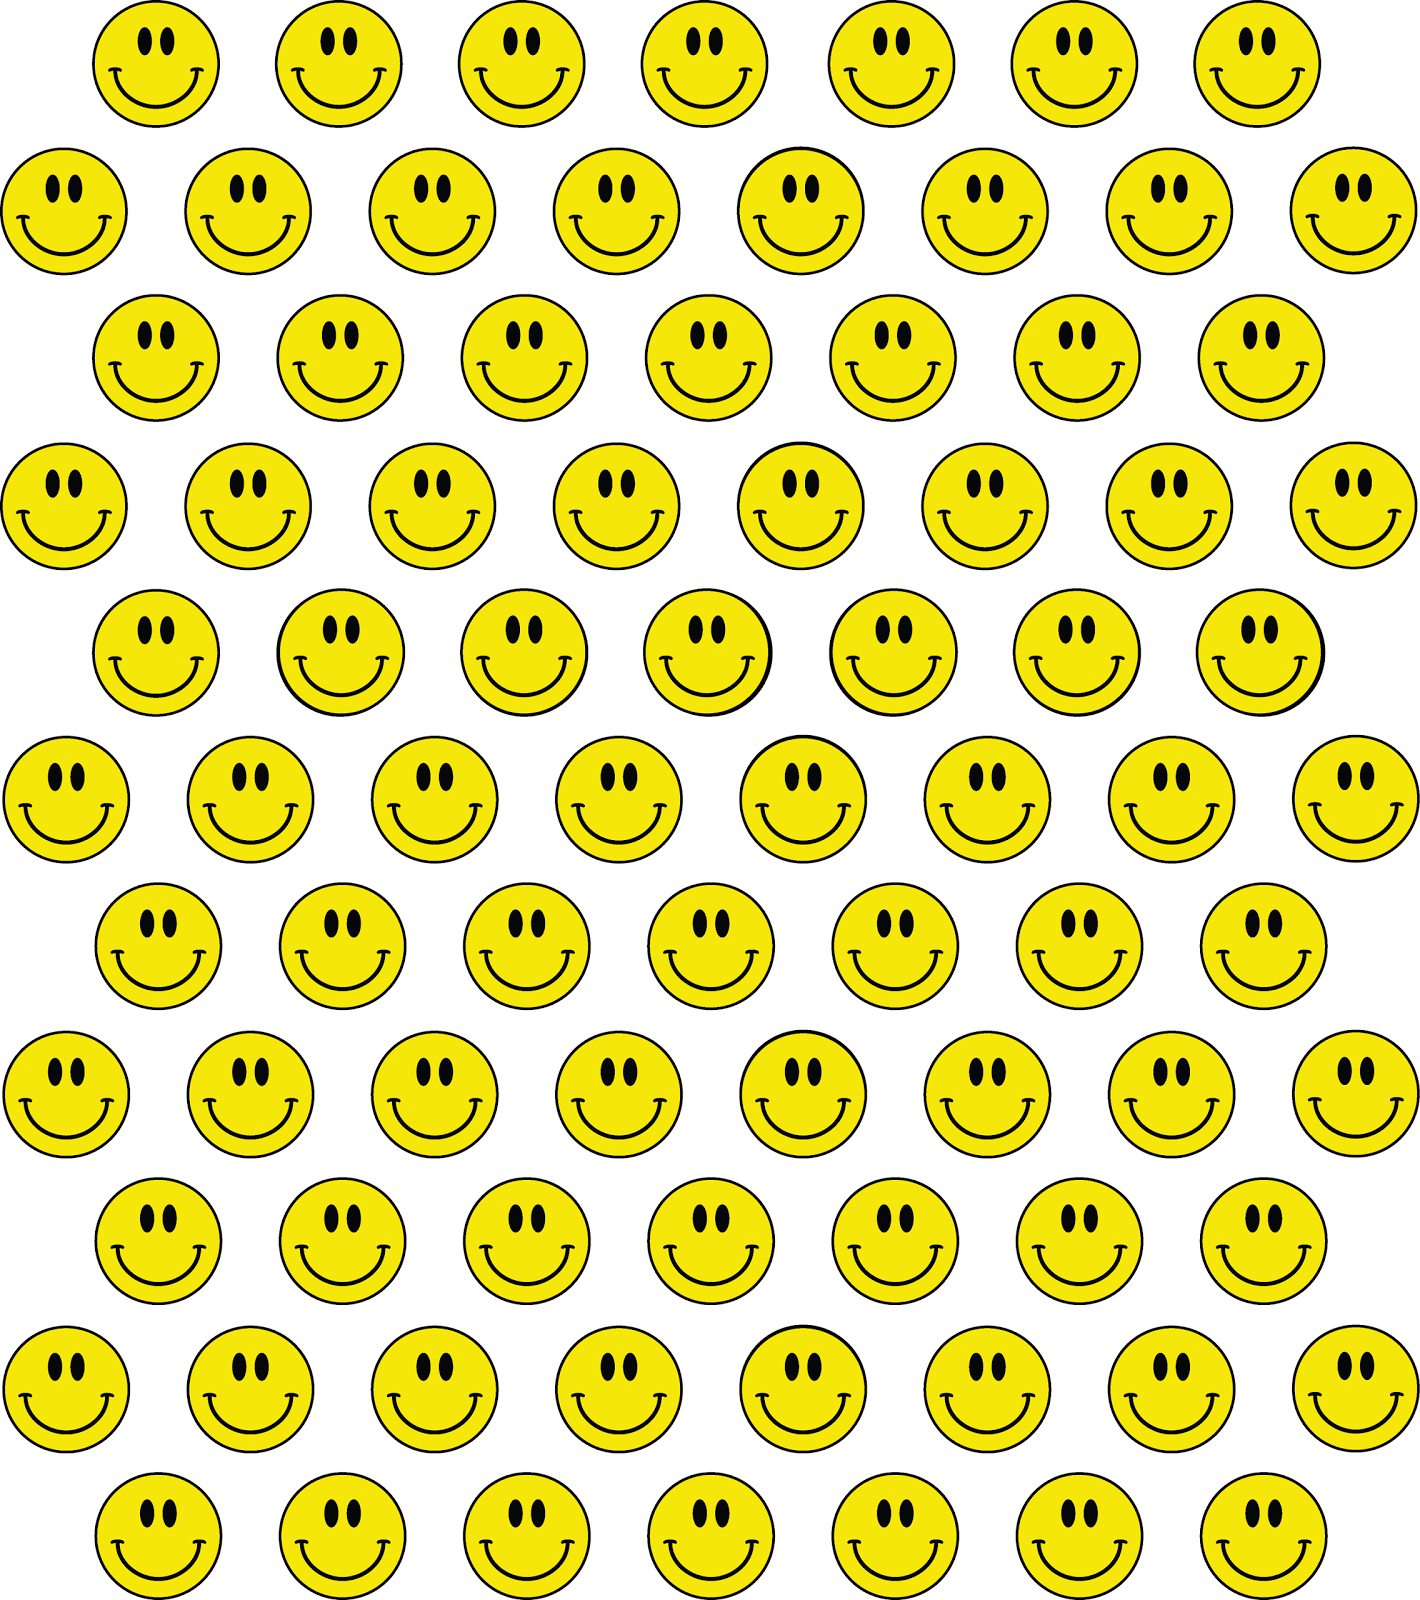 http://1.bp.blogspot.com/-QX-Q3uyc9fA/UAtcNIqoLnI/AAAAAAAAHb4/dcNcXkGUjSg/s1600/Smiley+Face+Happy+Face+Background+Paper+Material.png